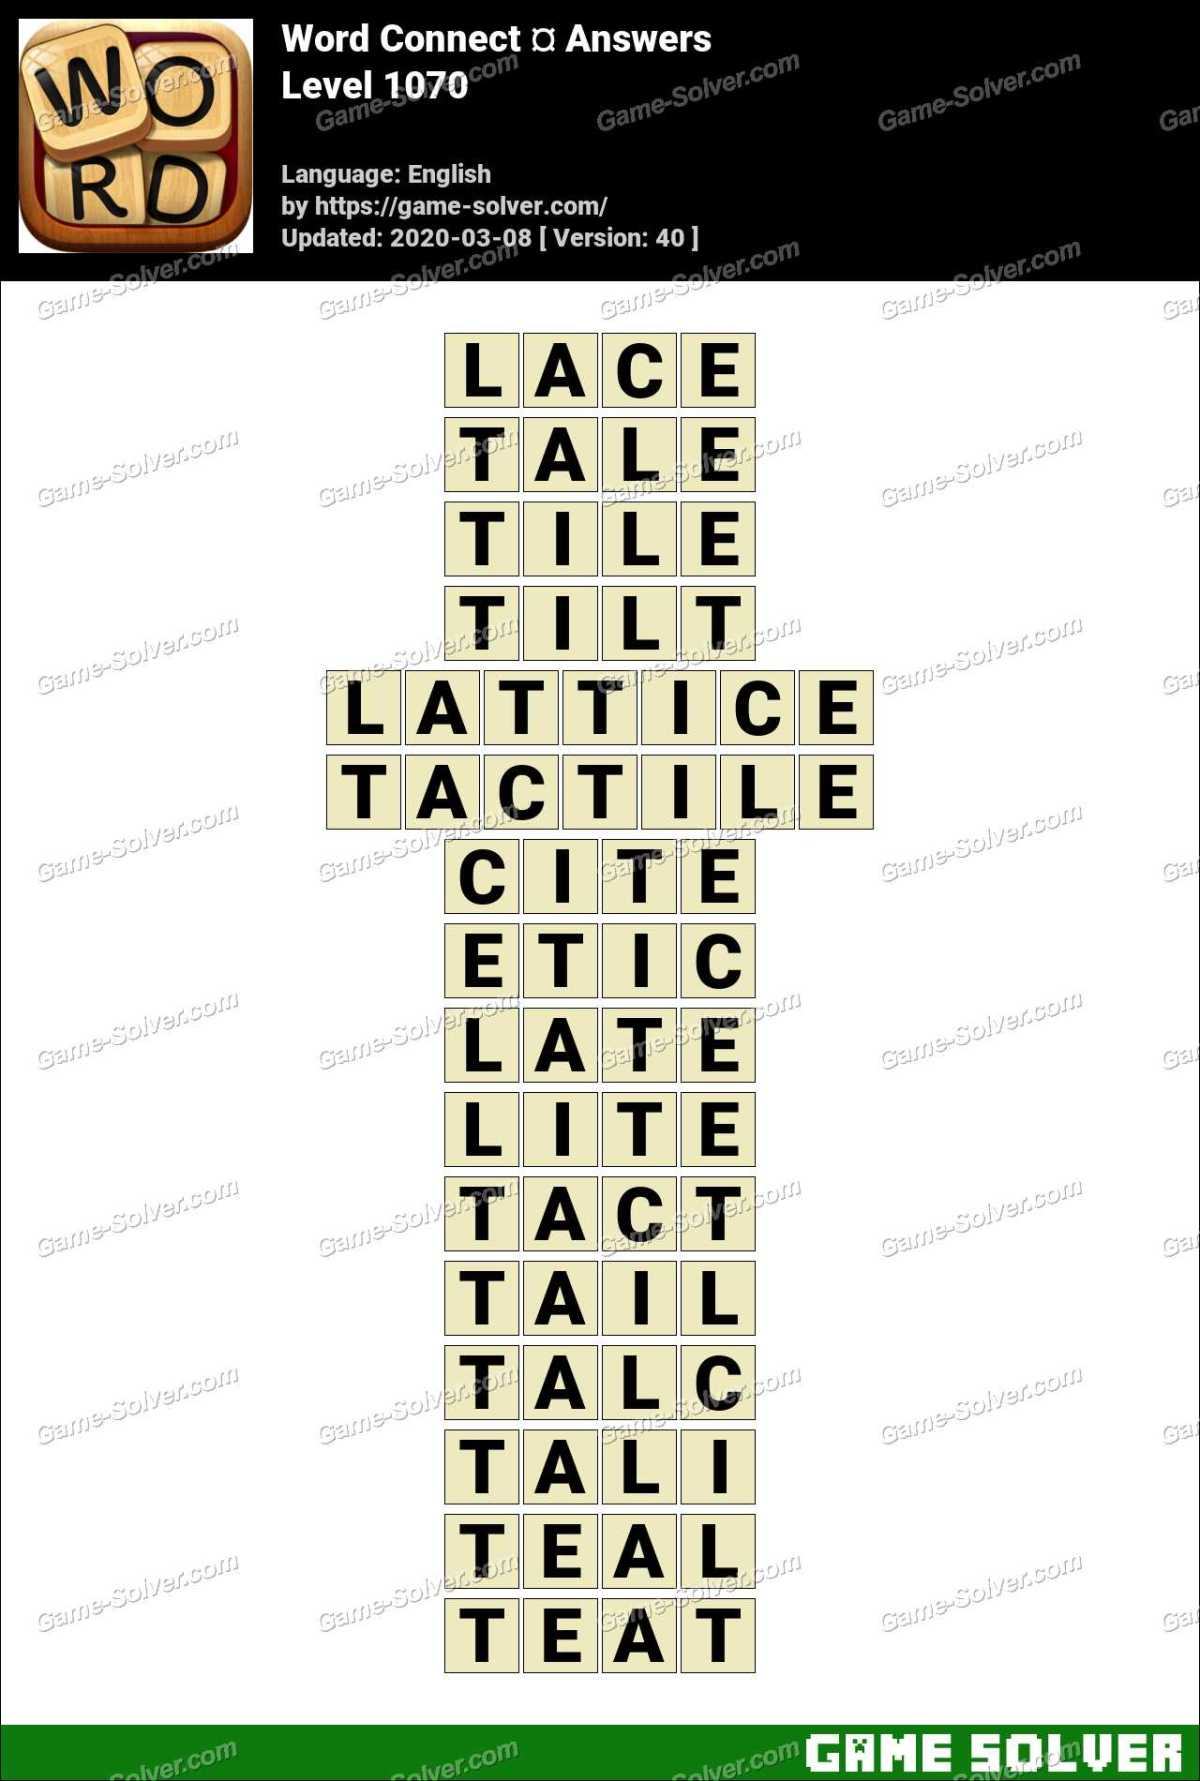 Word Connect Level 1070 Answers